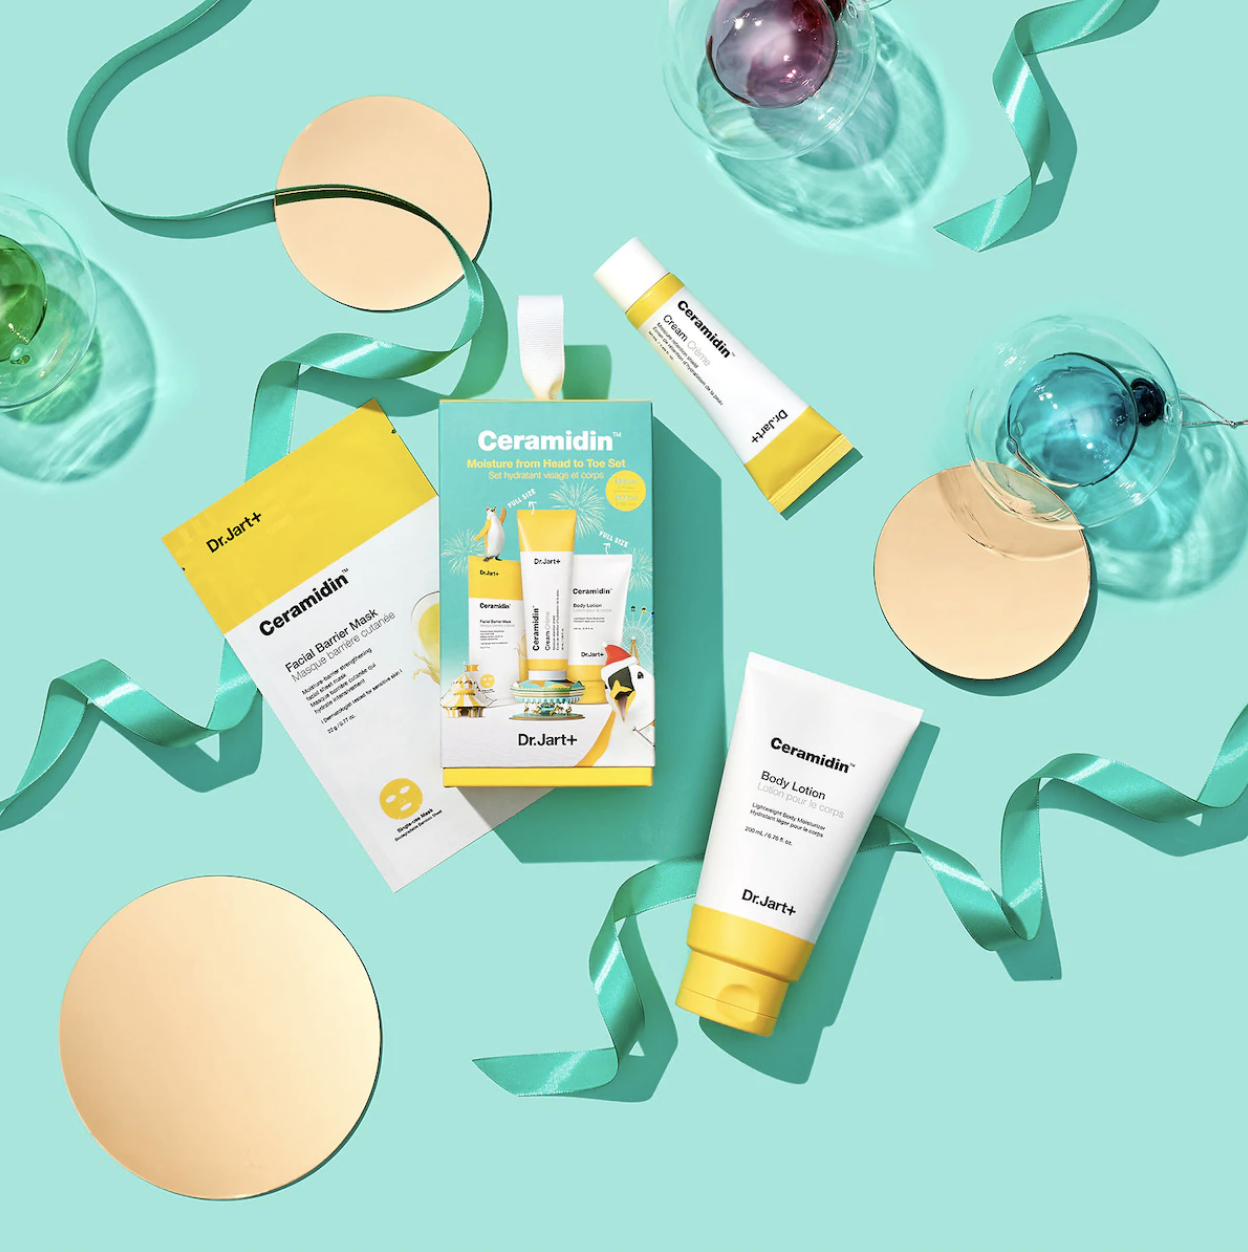 The set with tubes of product and a package with a face mask